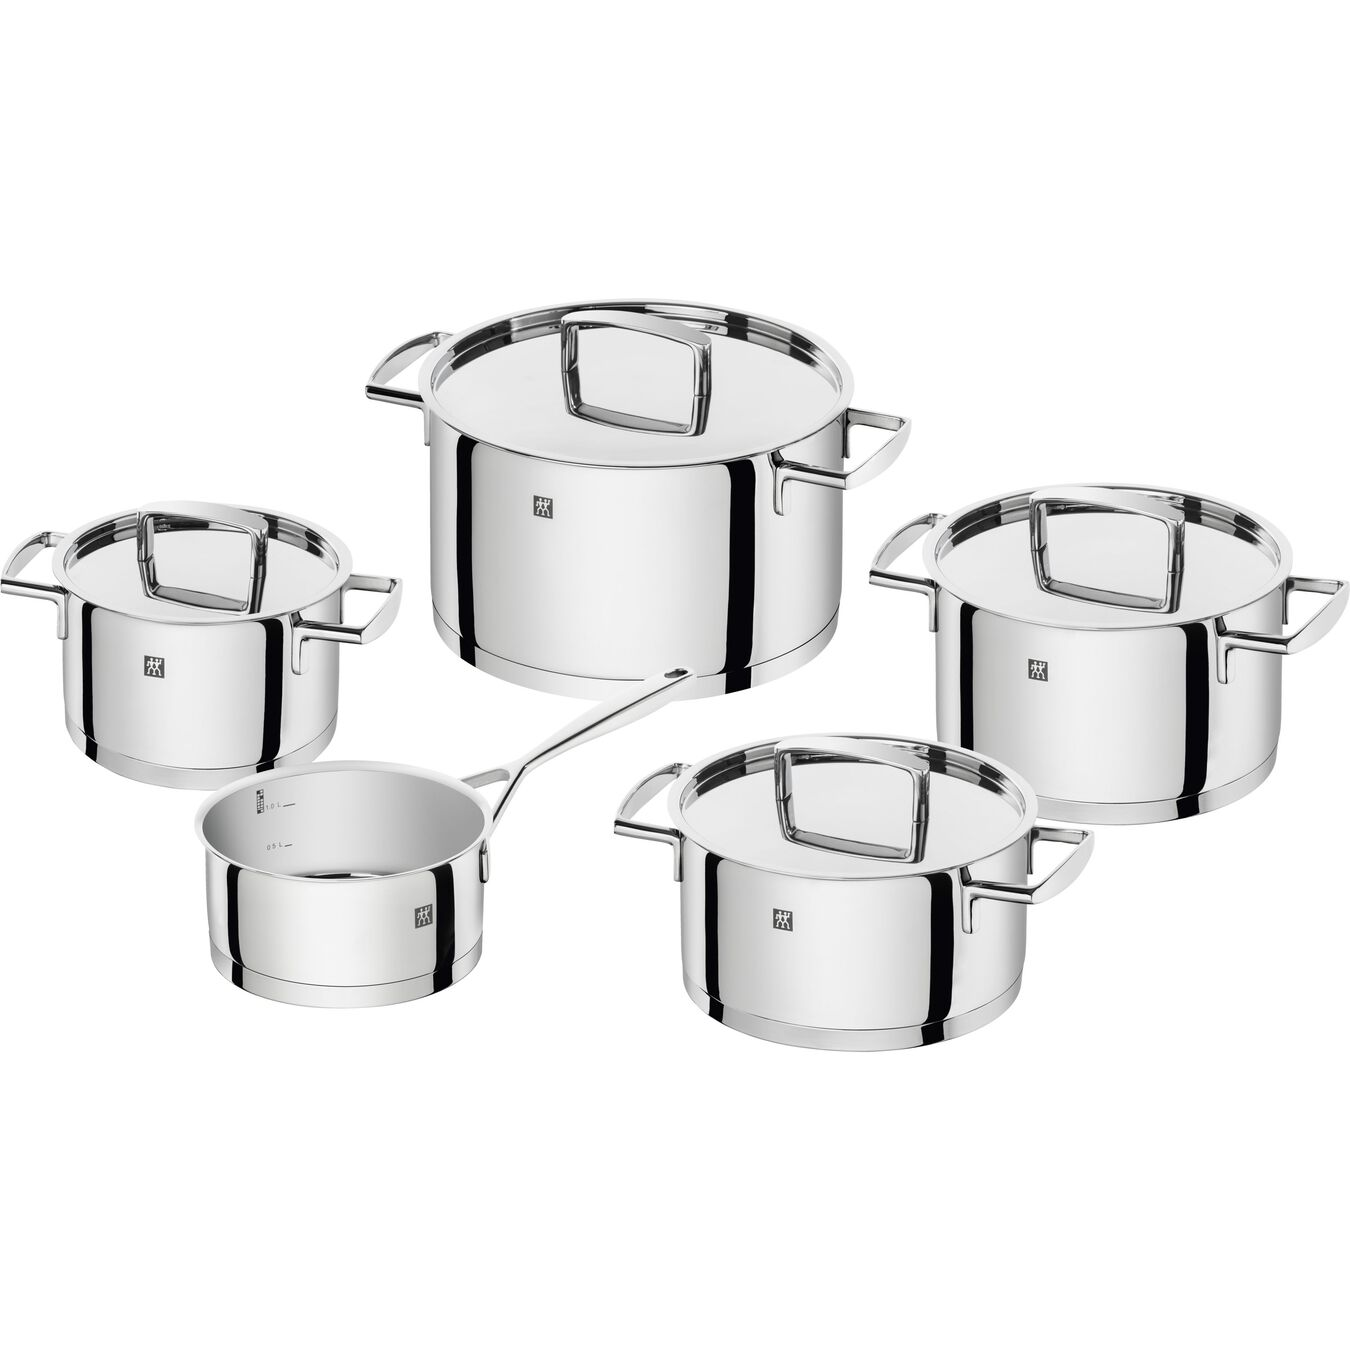 Ensemble de casseroles 5-pcs, Inox 18/10,,large 1